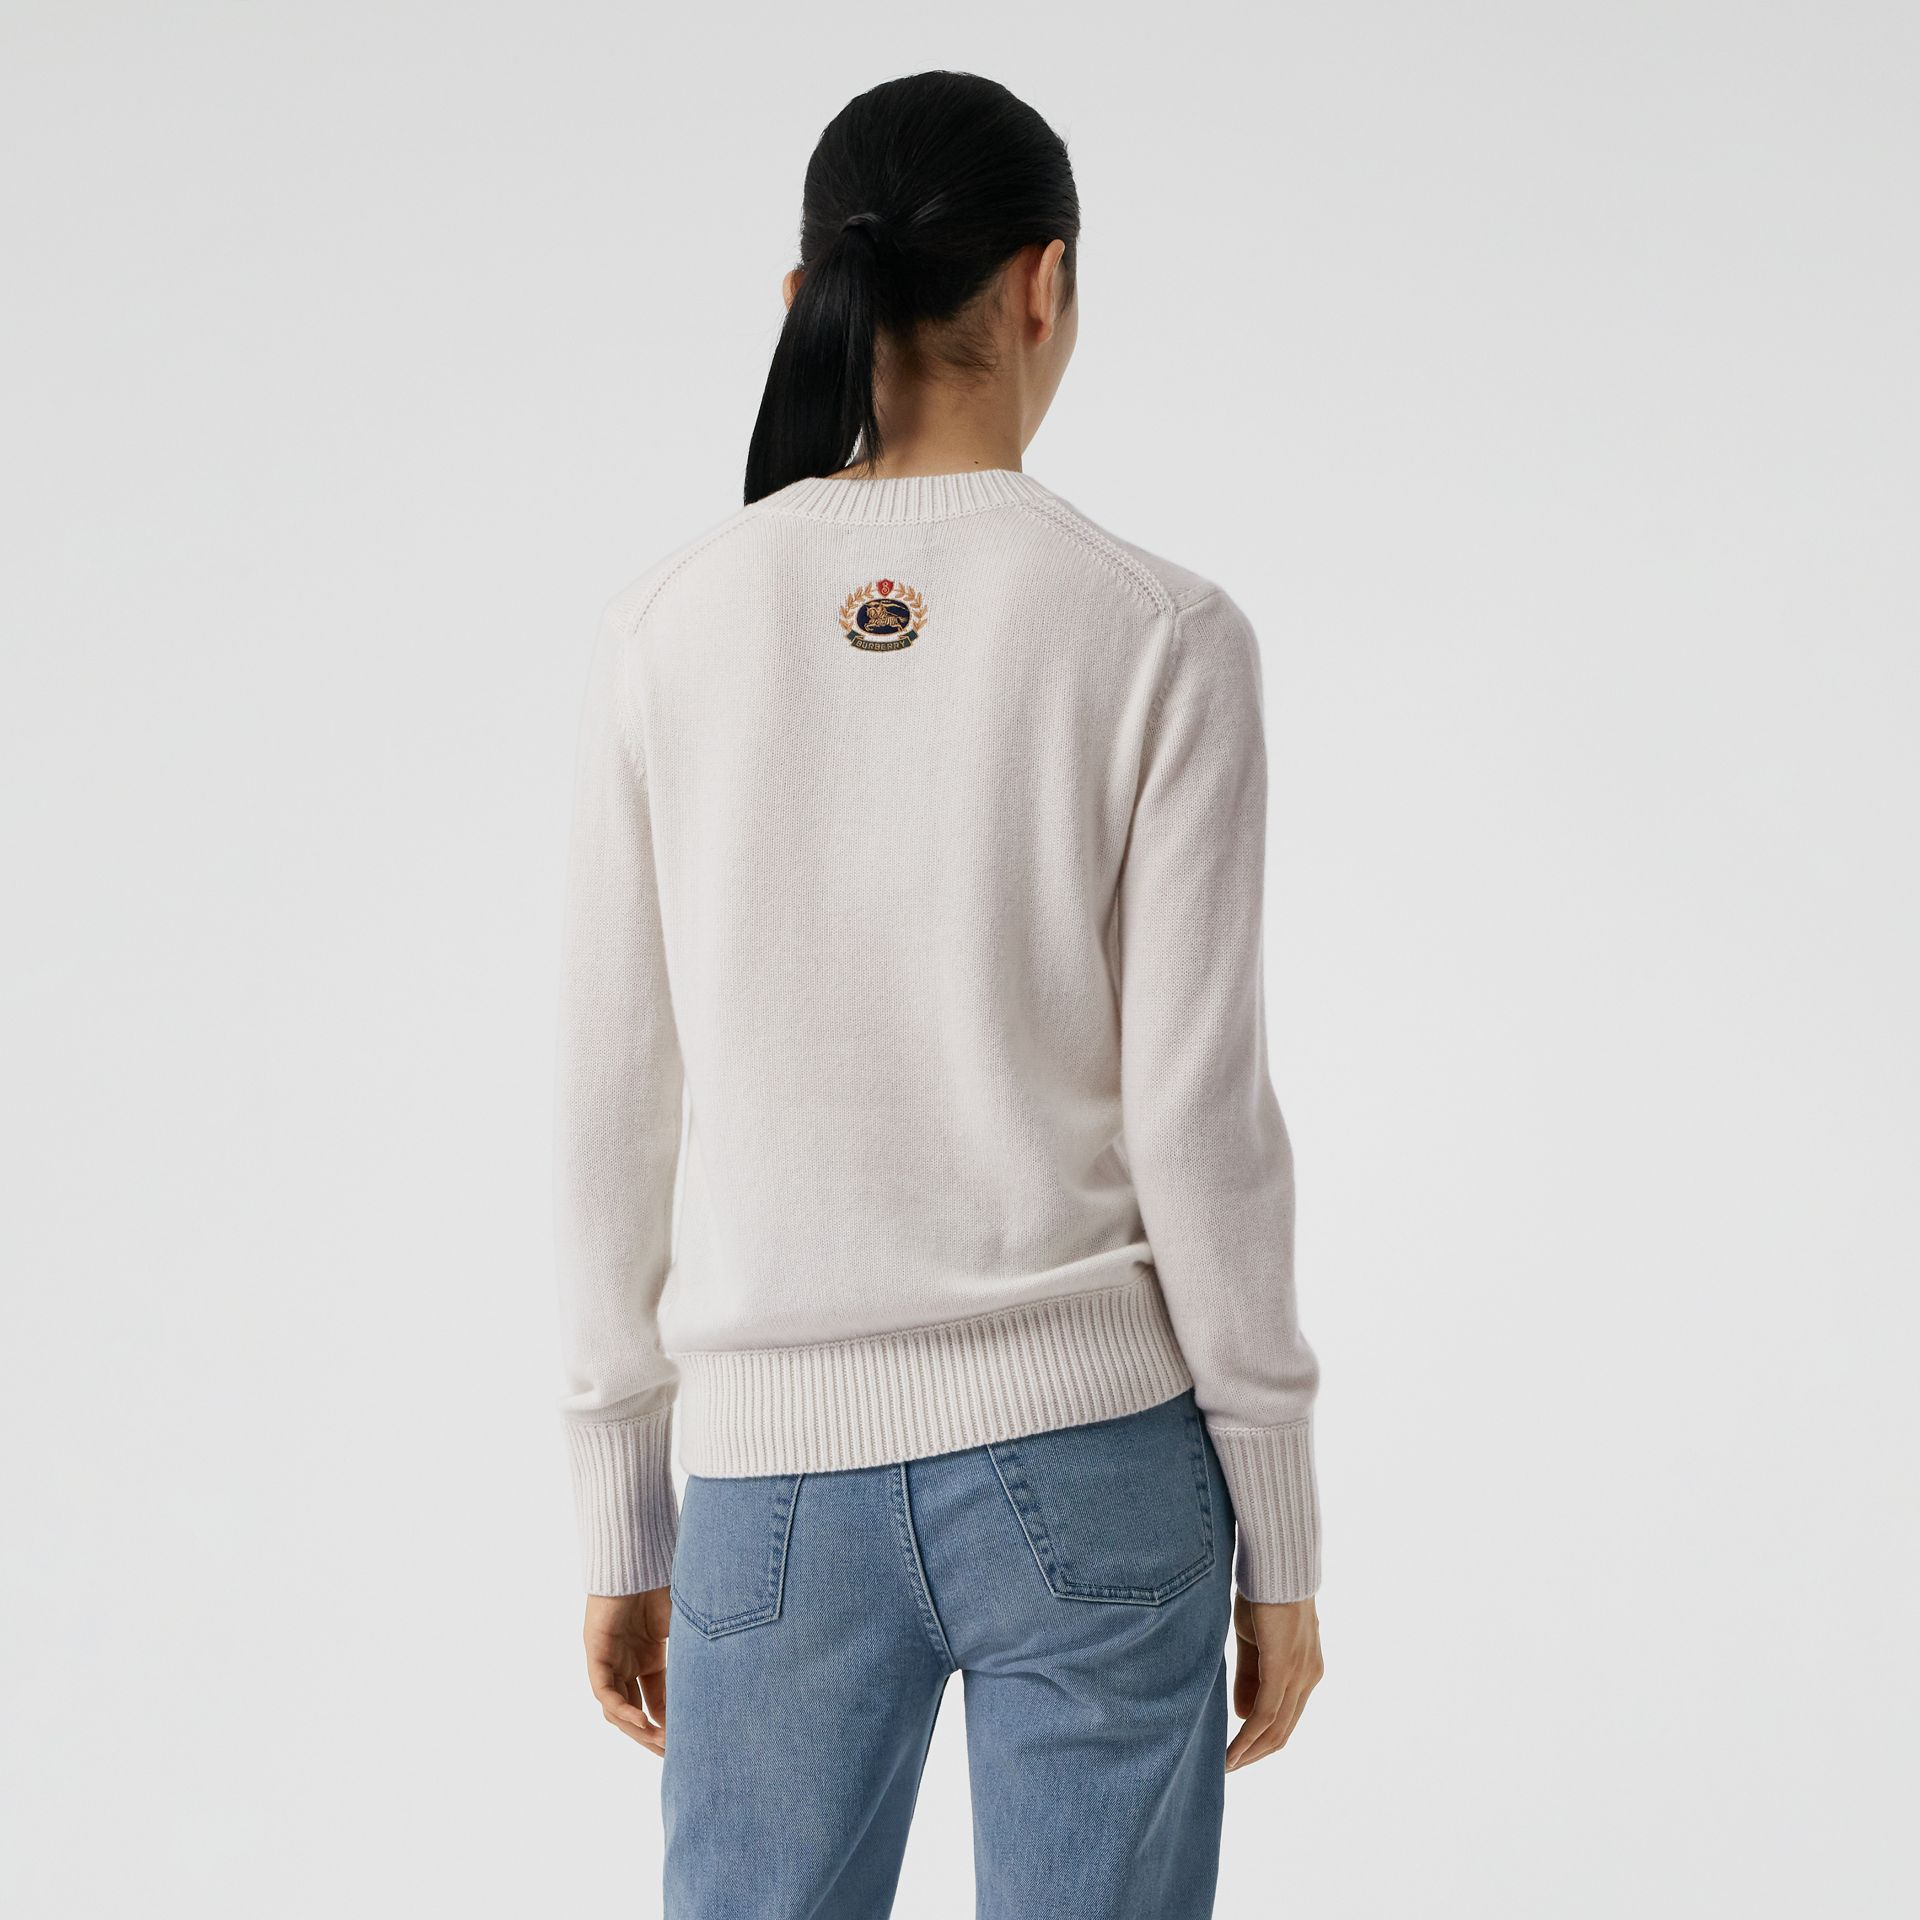 Archive Logo Appliqué Cashmere Sweater in White - Women | Burberry - gallery image 2